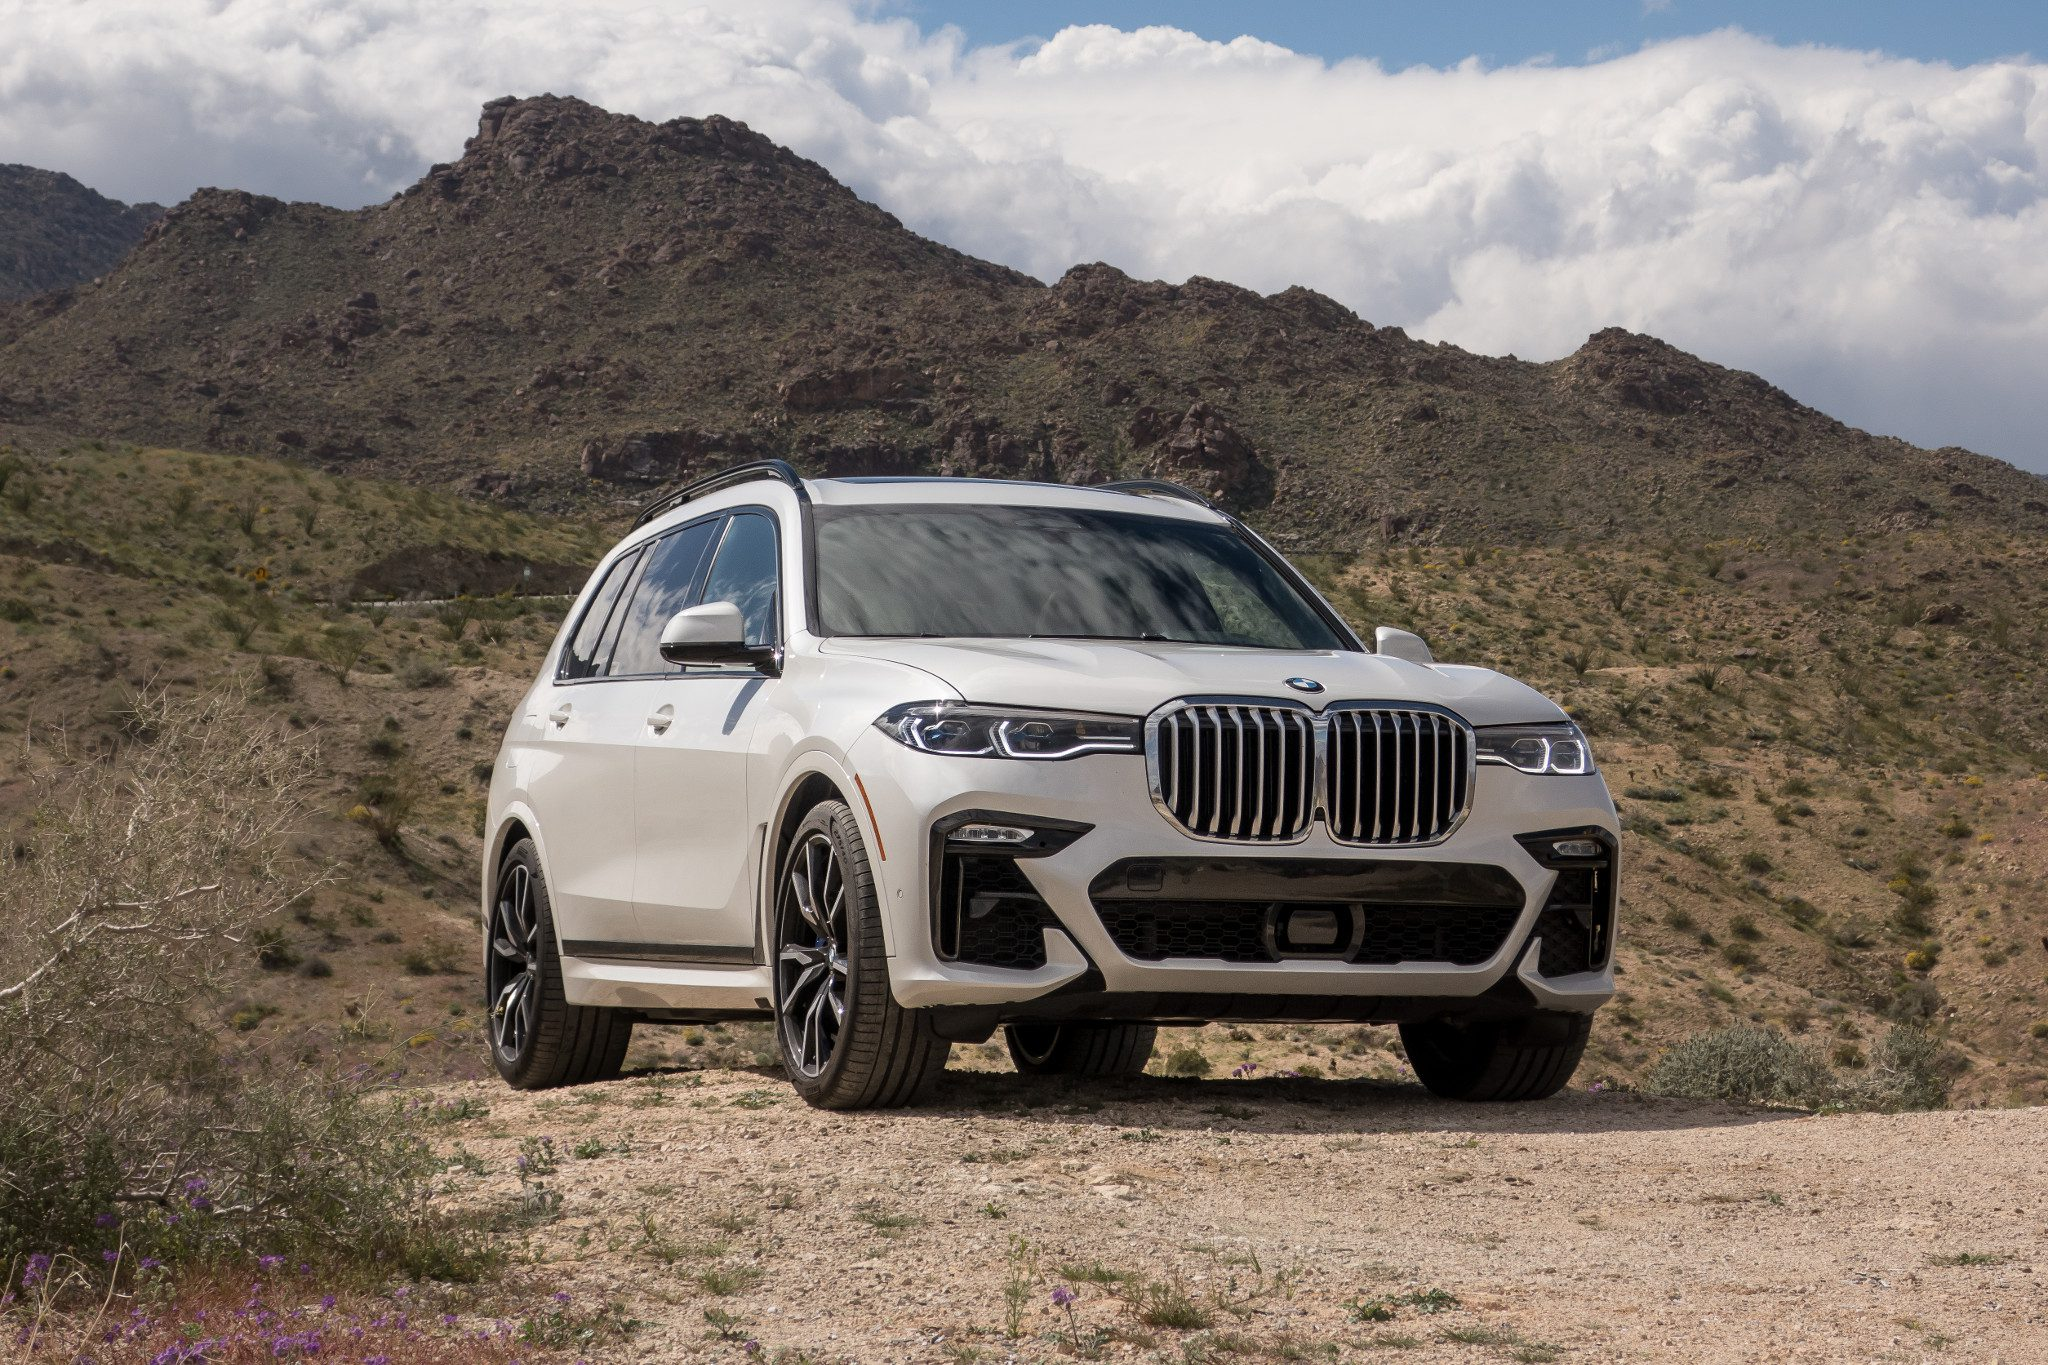 2019 BMW X7 Review: Late to the Party, Bringing Caviar ...